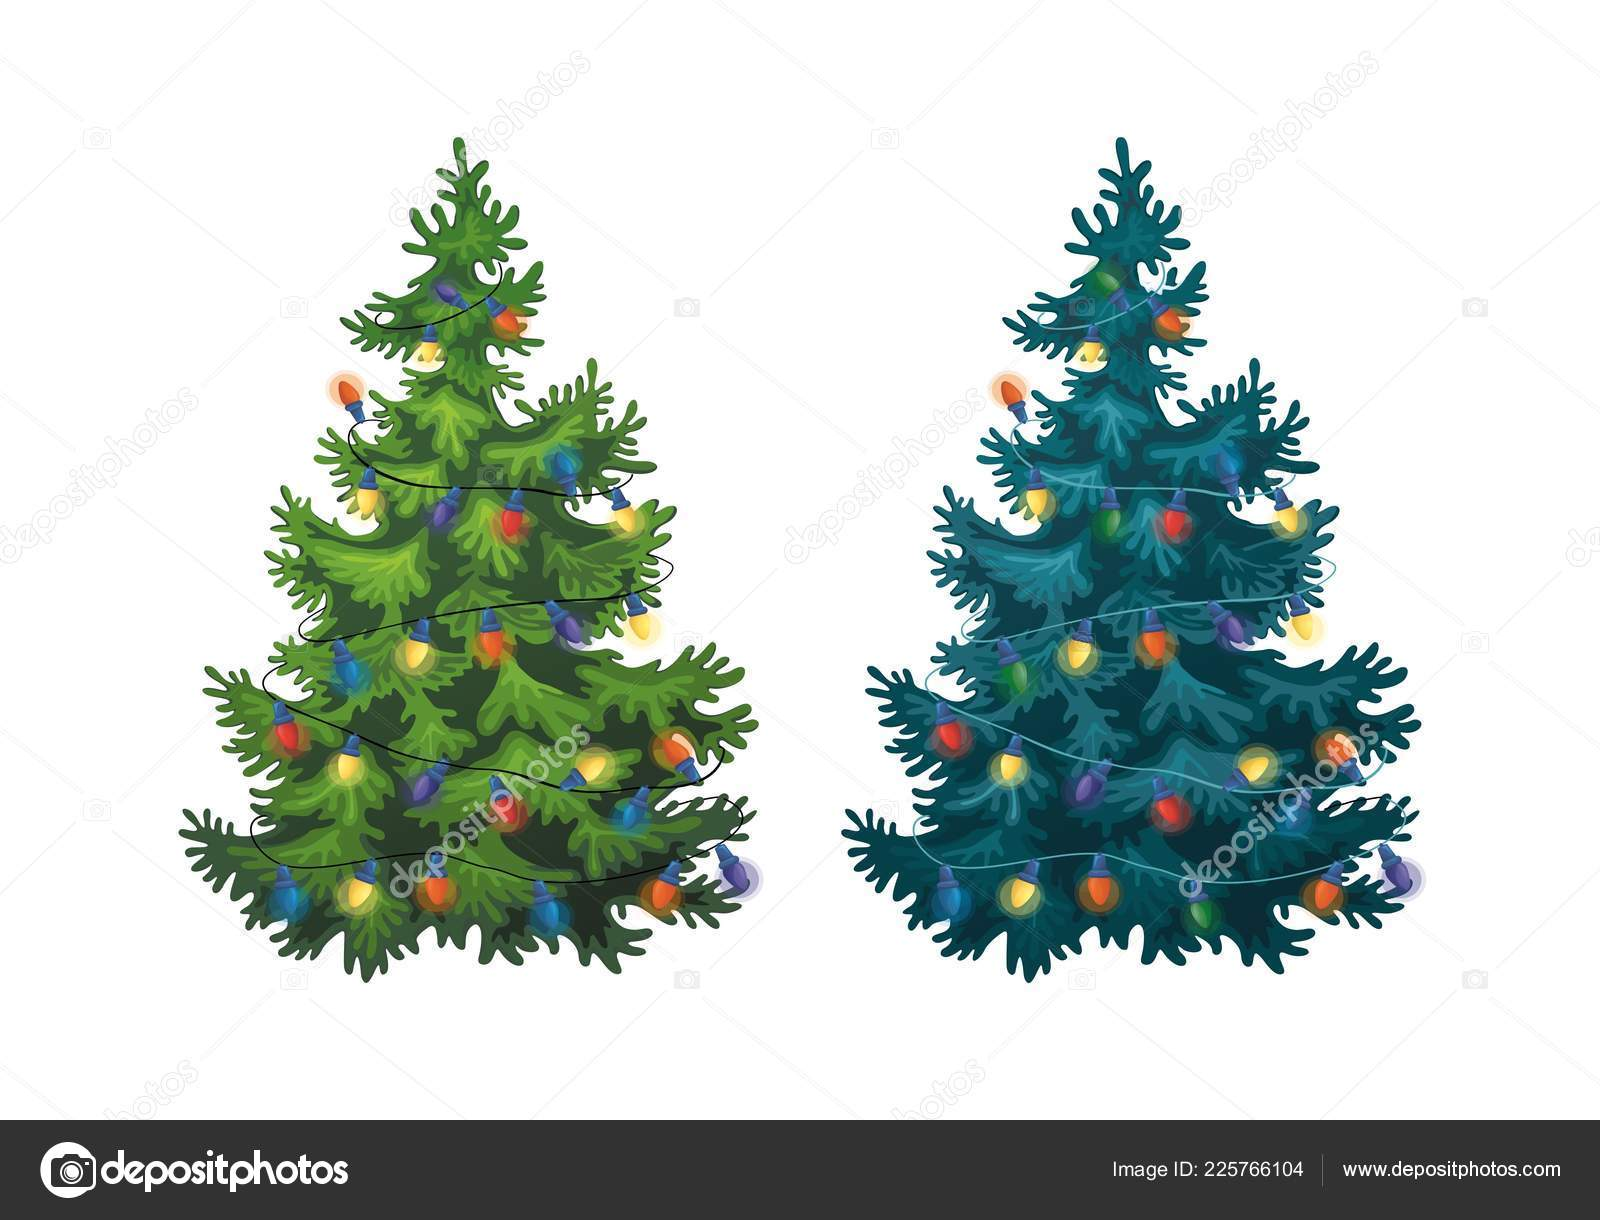 Christmas Tree Illustration.Vector Illustration Decorated Christmas Tree White